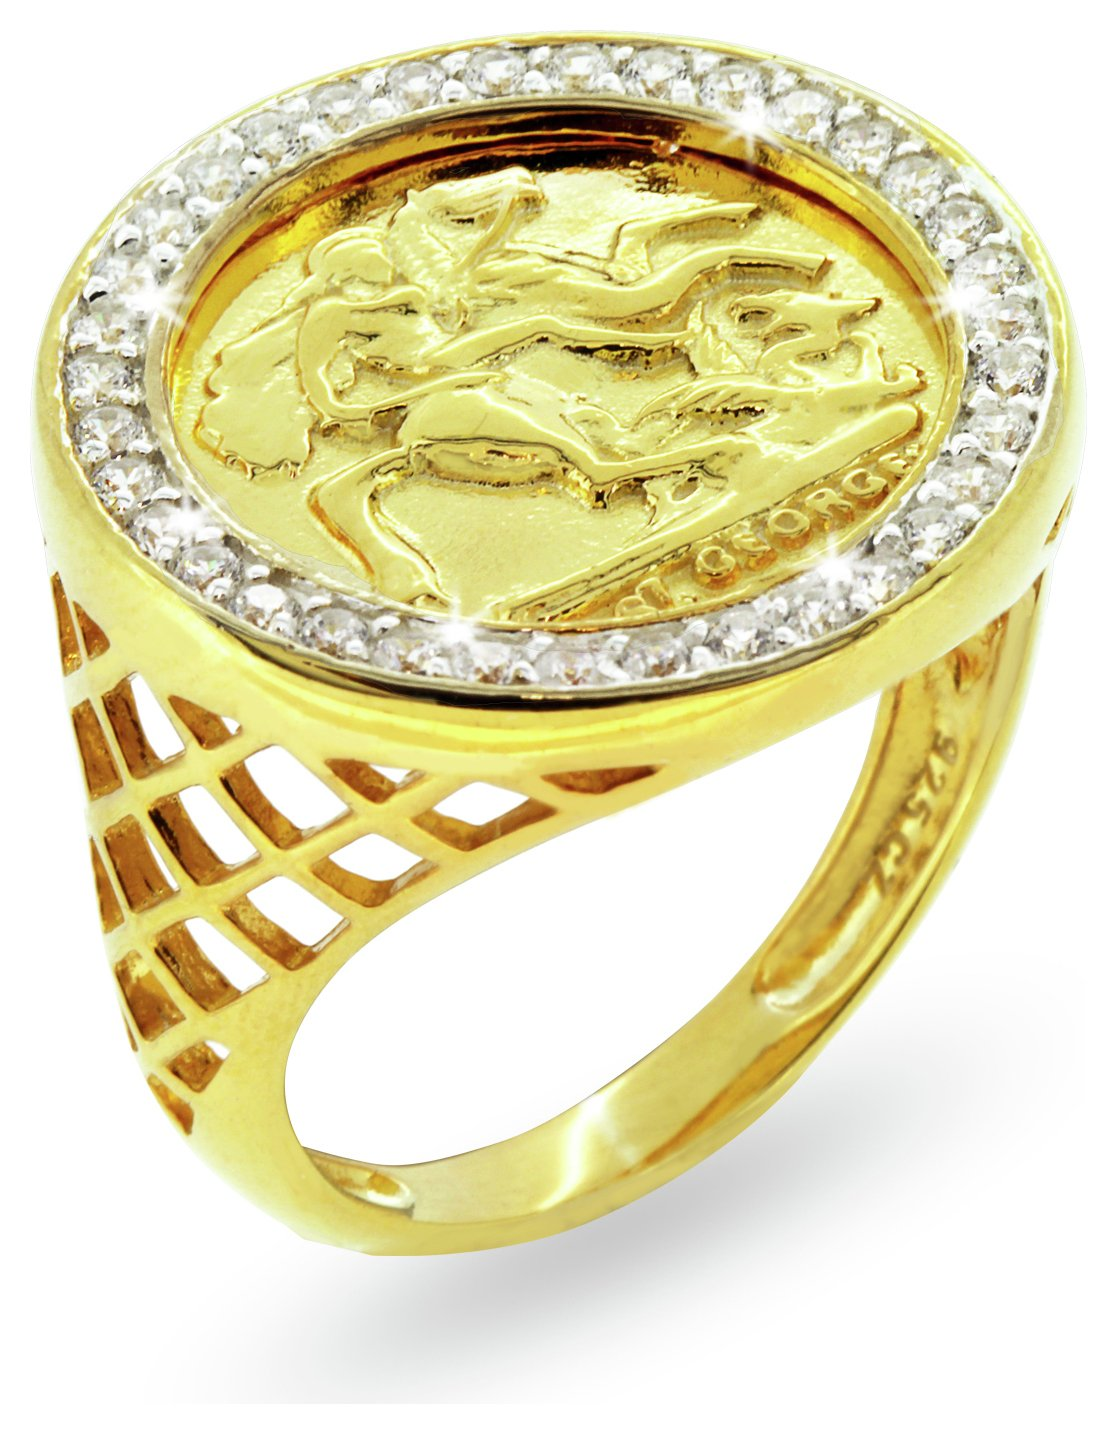 Image of Revere Men's Gold Plated Sterling Silver CZ Medallion Ring